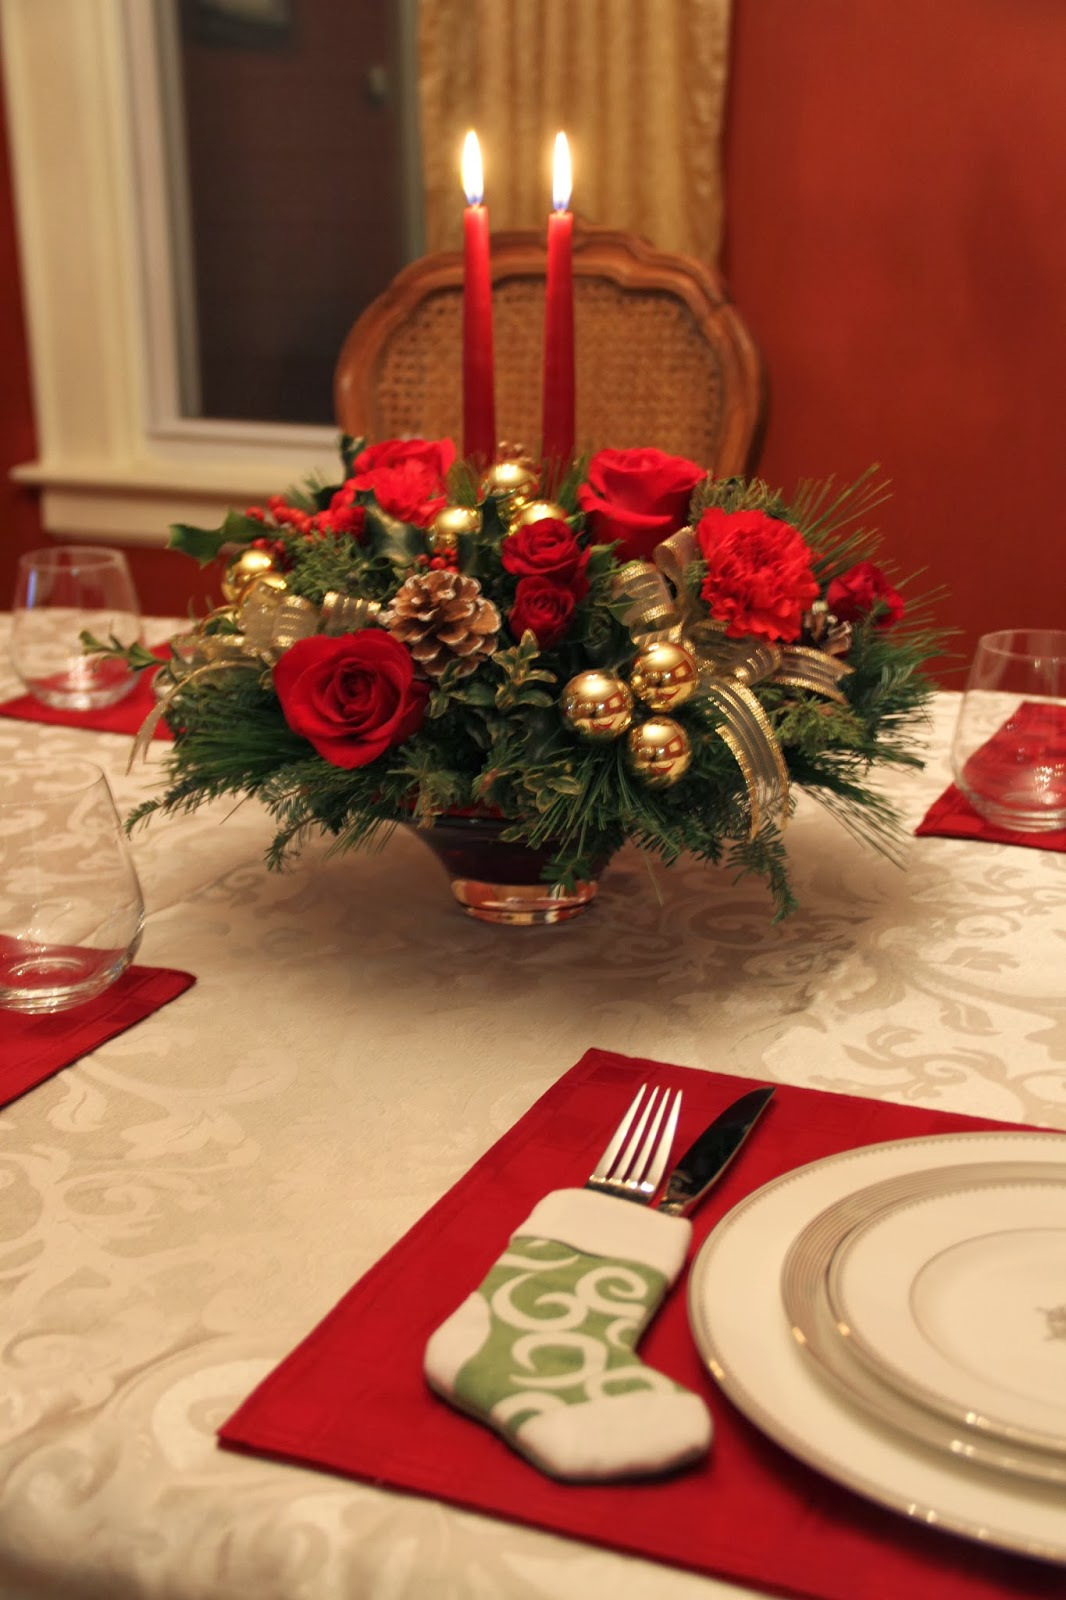 Christmas Centerpiece Giveaway : Decorating tips giveaway sponsored by teleflora